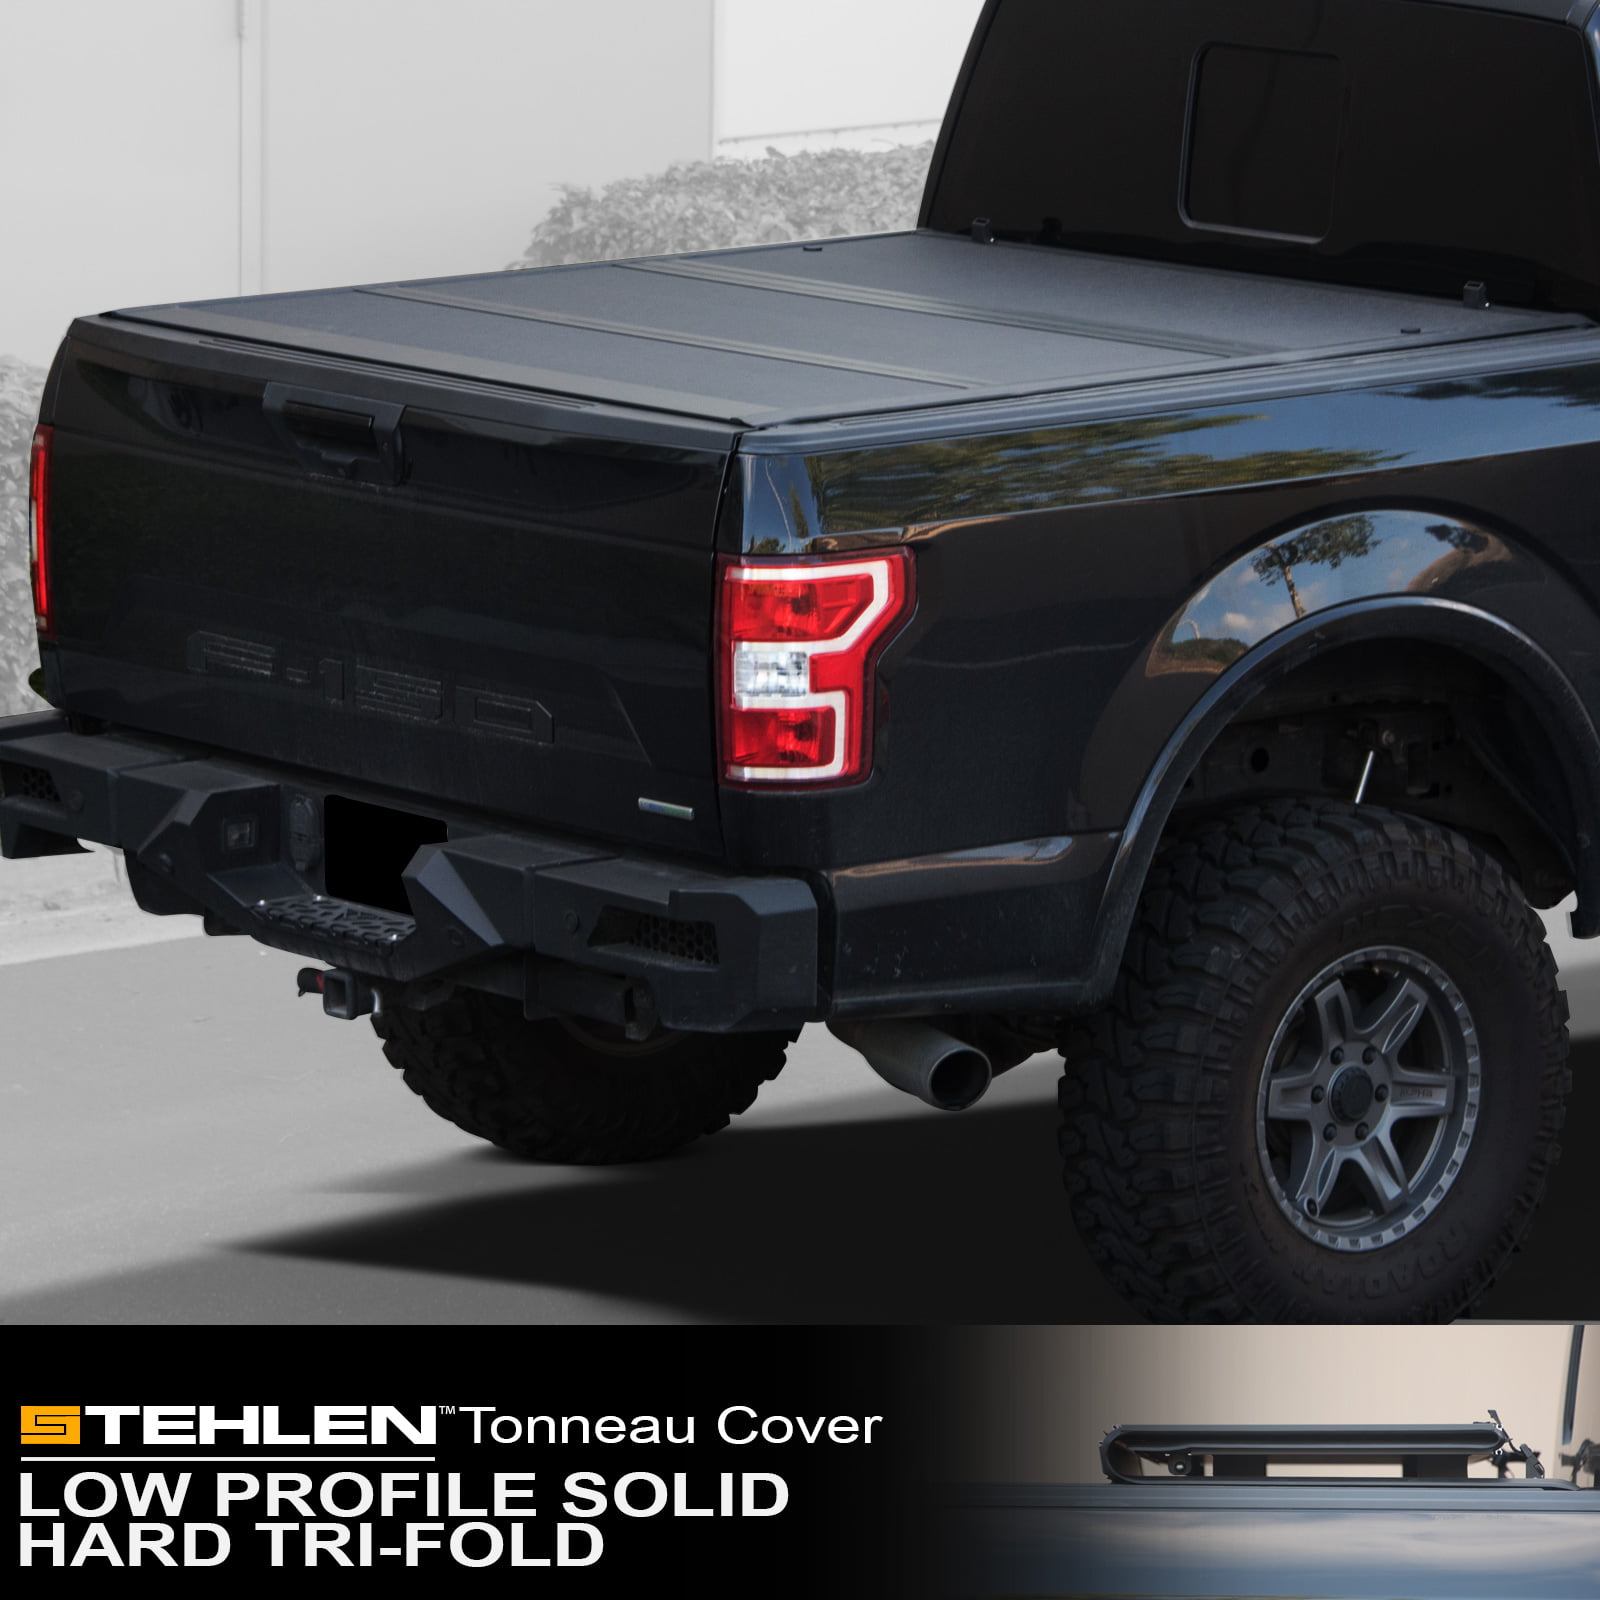 Stehlen 642167822394 Low Profile Hard Plastic Tri Fold Tonneau Cover Matte Black For 2019 2020 Up Dodge Ram 1500 5 7 Feet 68 4 Short Bed New Body Style Walmart Com Walmart Com